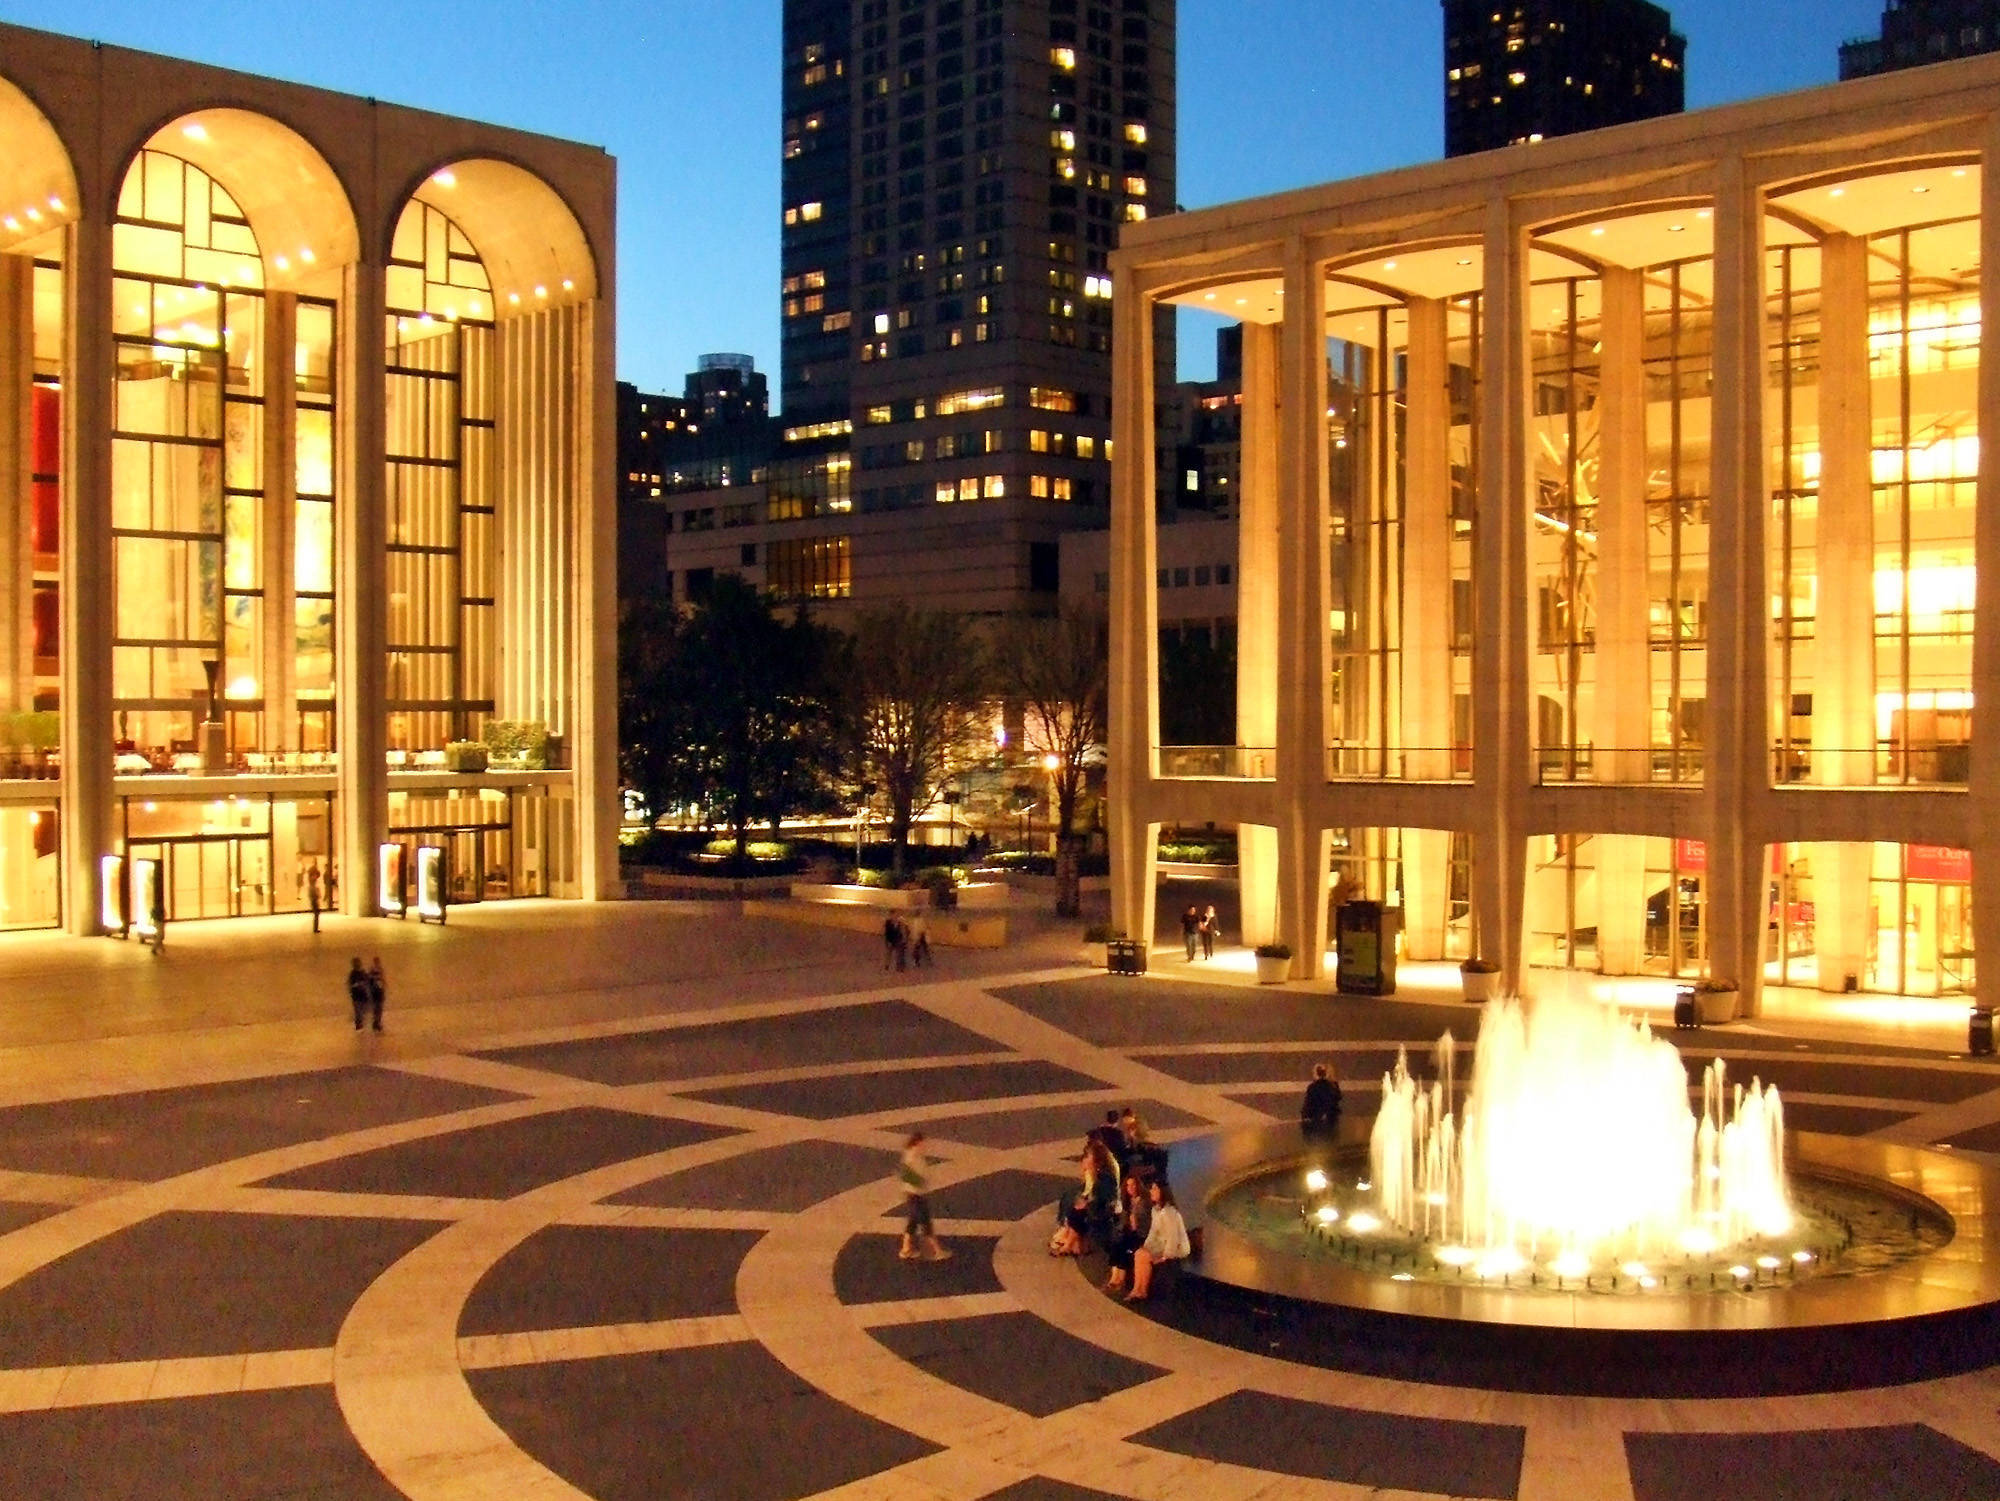 968a14a23601c13a18b7_Lincoln_Center_Twilight.jpg